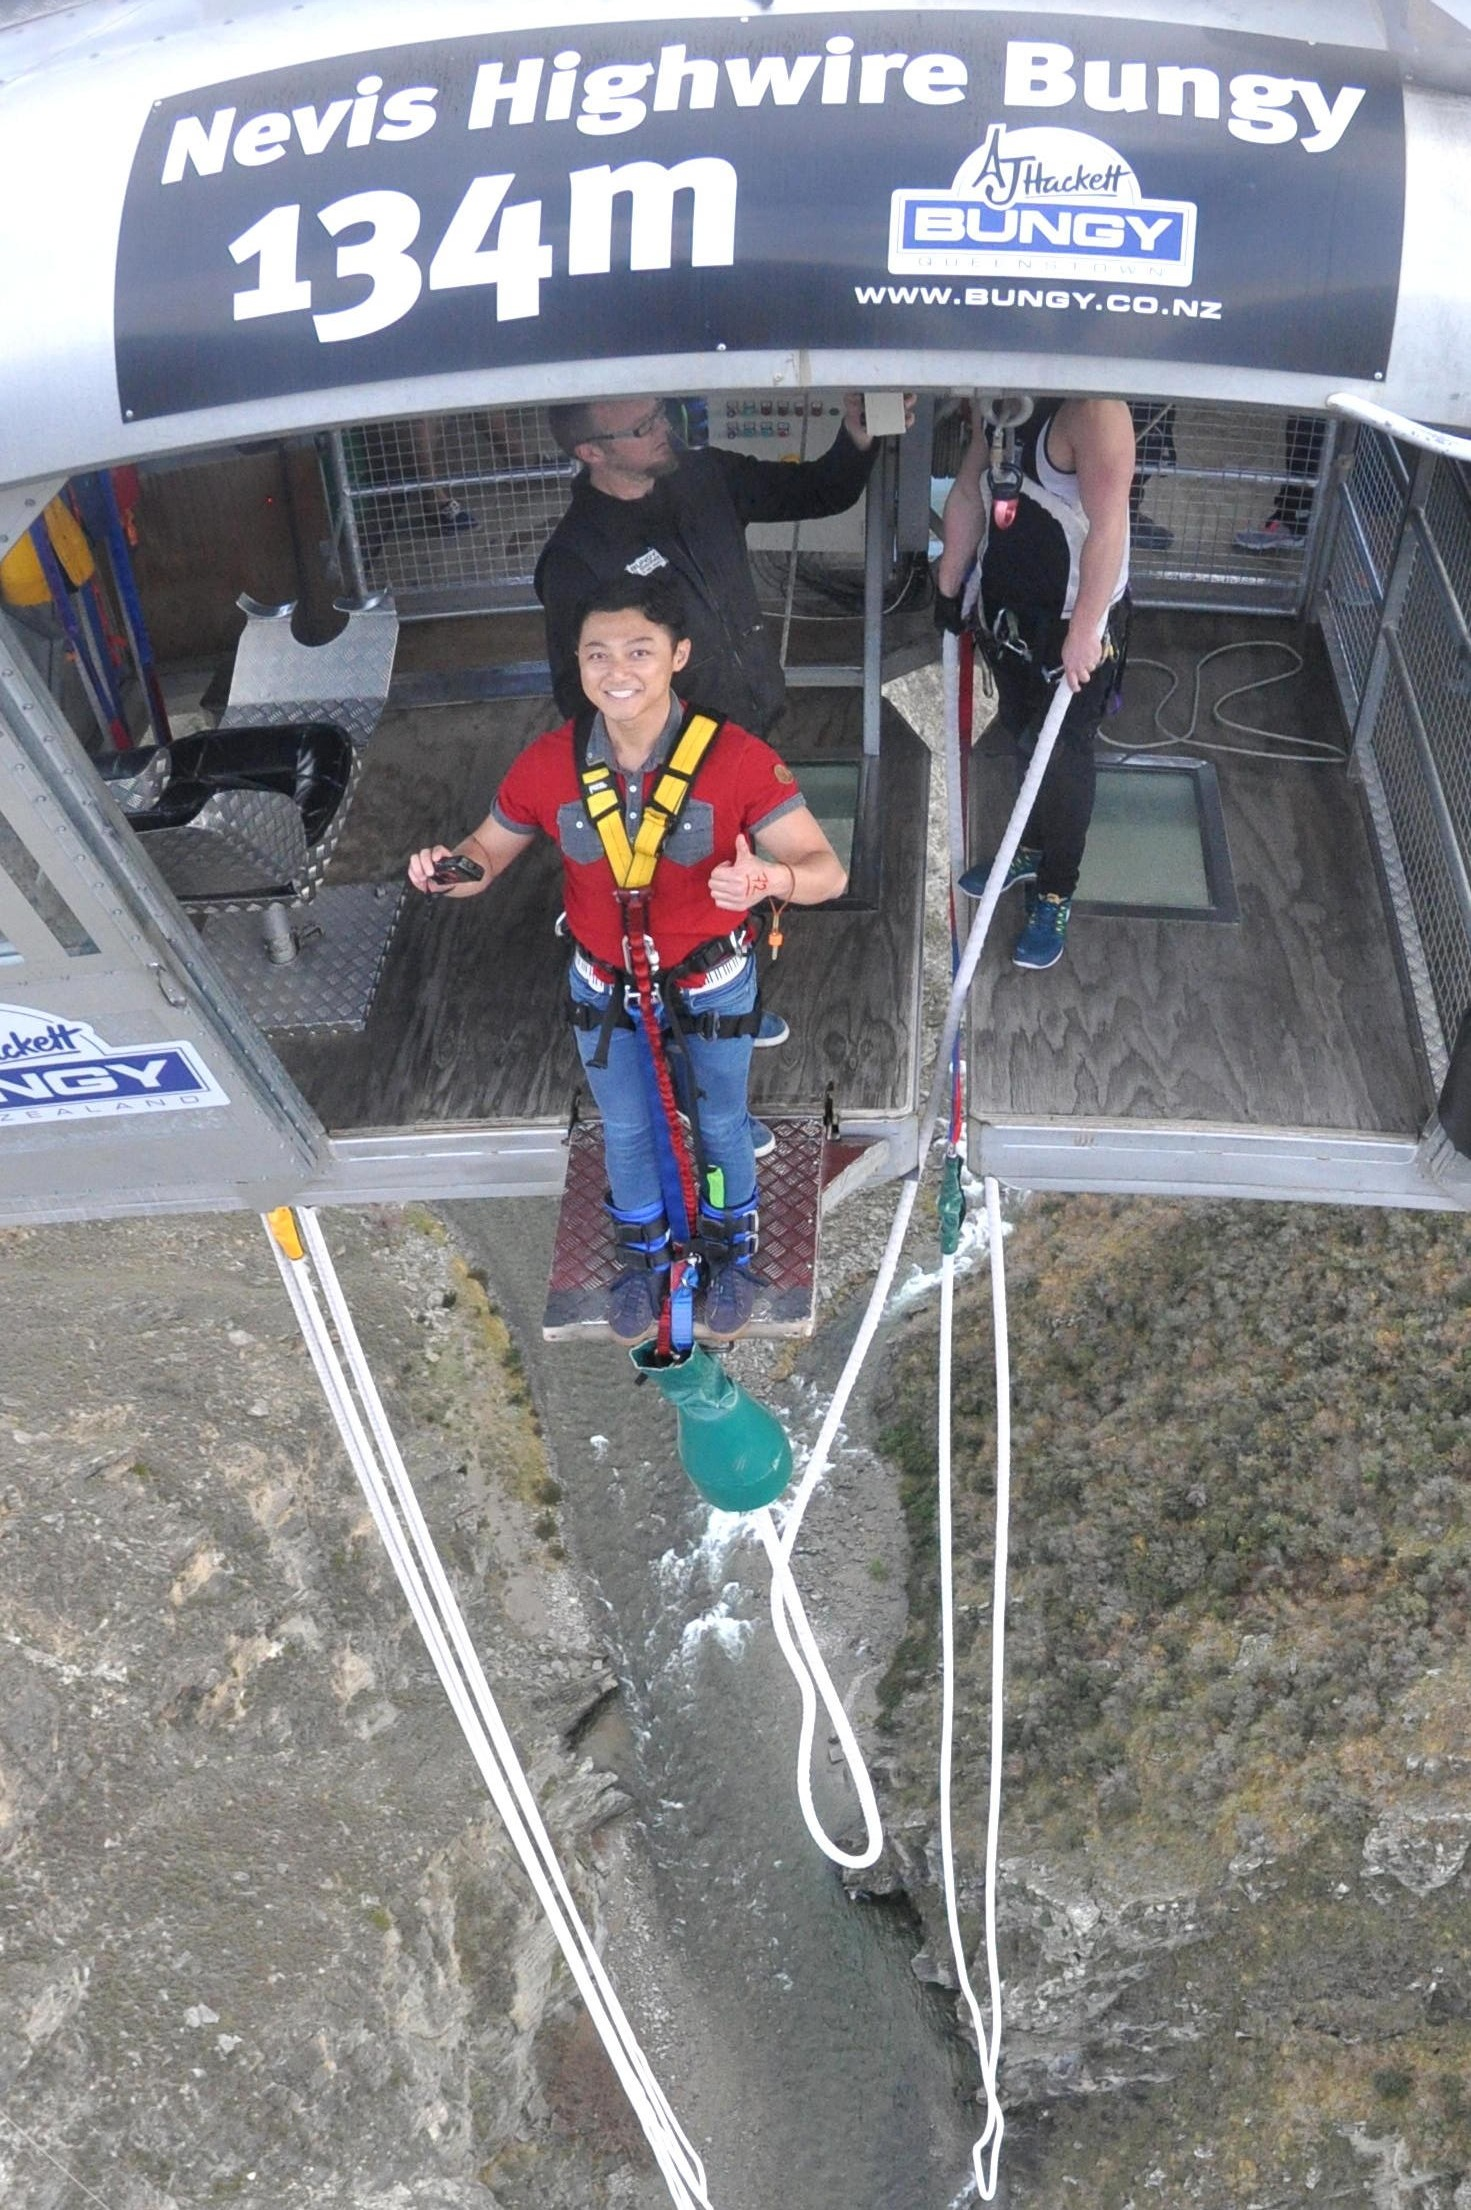 Stepping out onto the ledge. Getting ready for the 134m jump of faith.